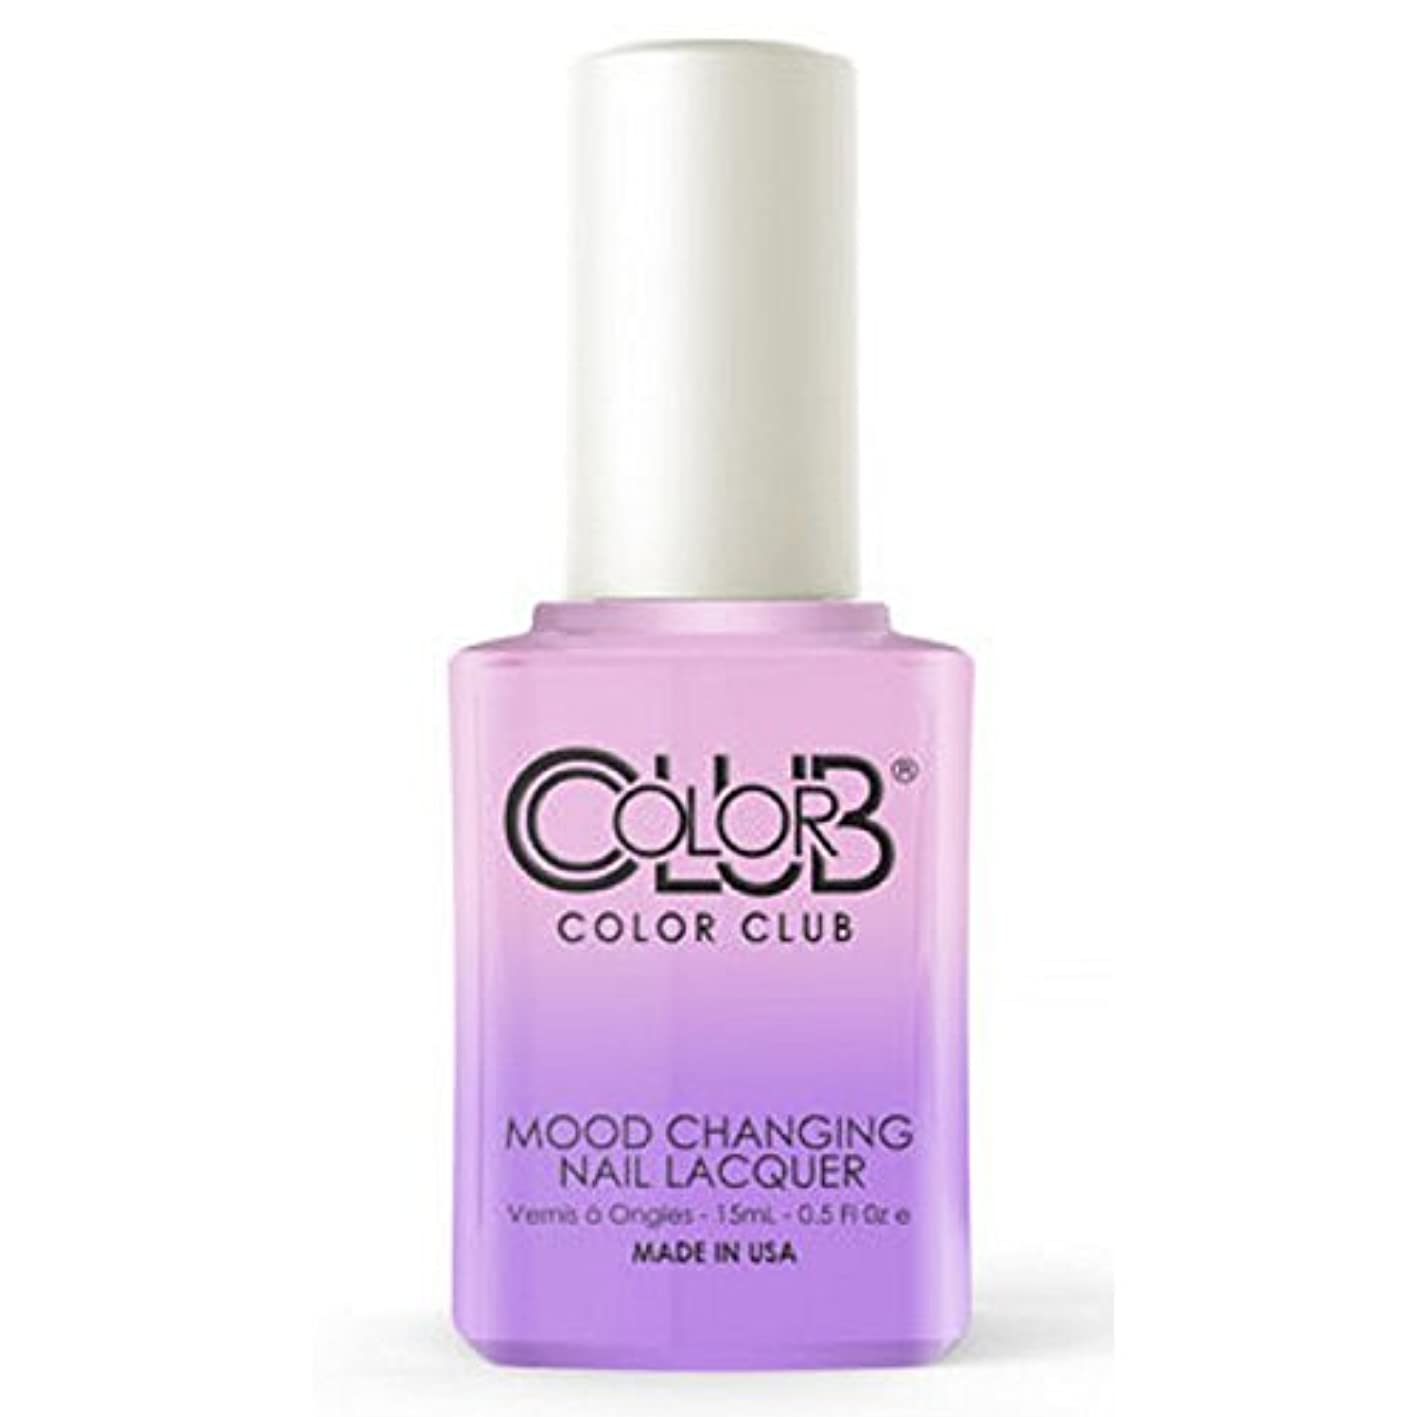 Color Club Mood Changing Nail Lacquer - Go with the Flow- 15 mL / 0.5 fl oz